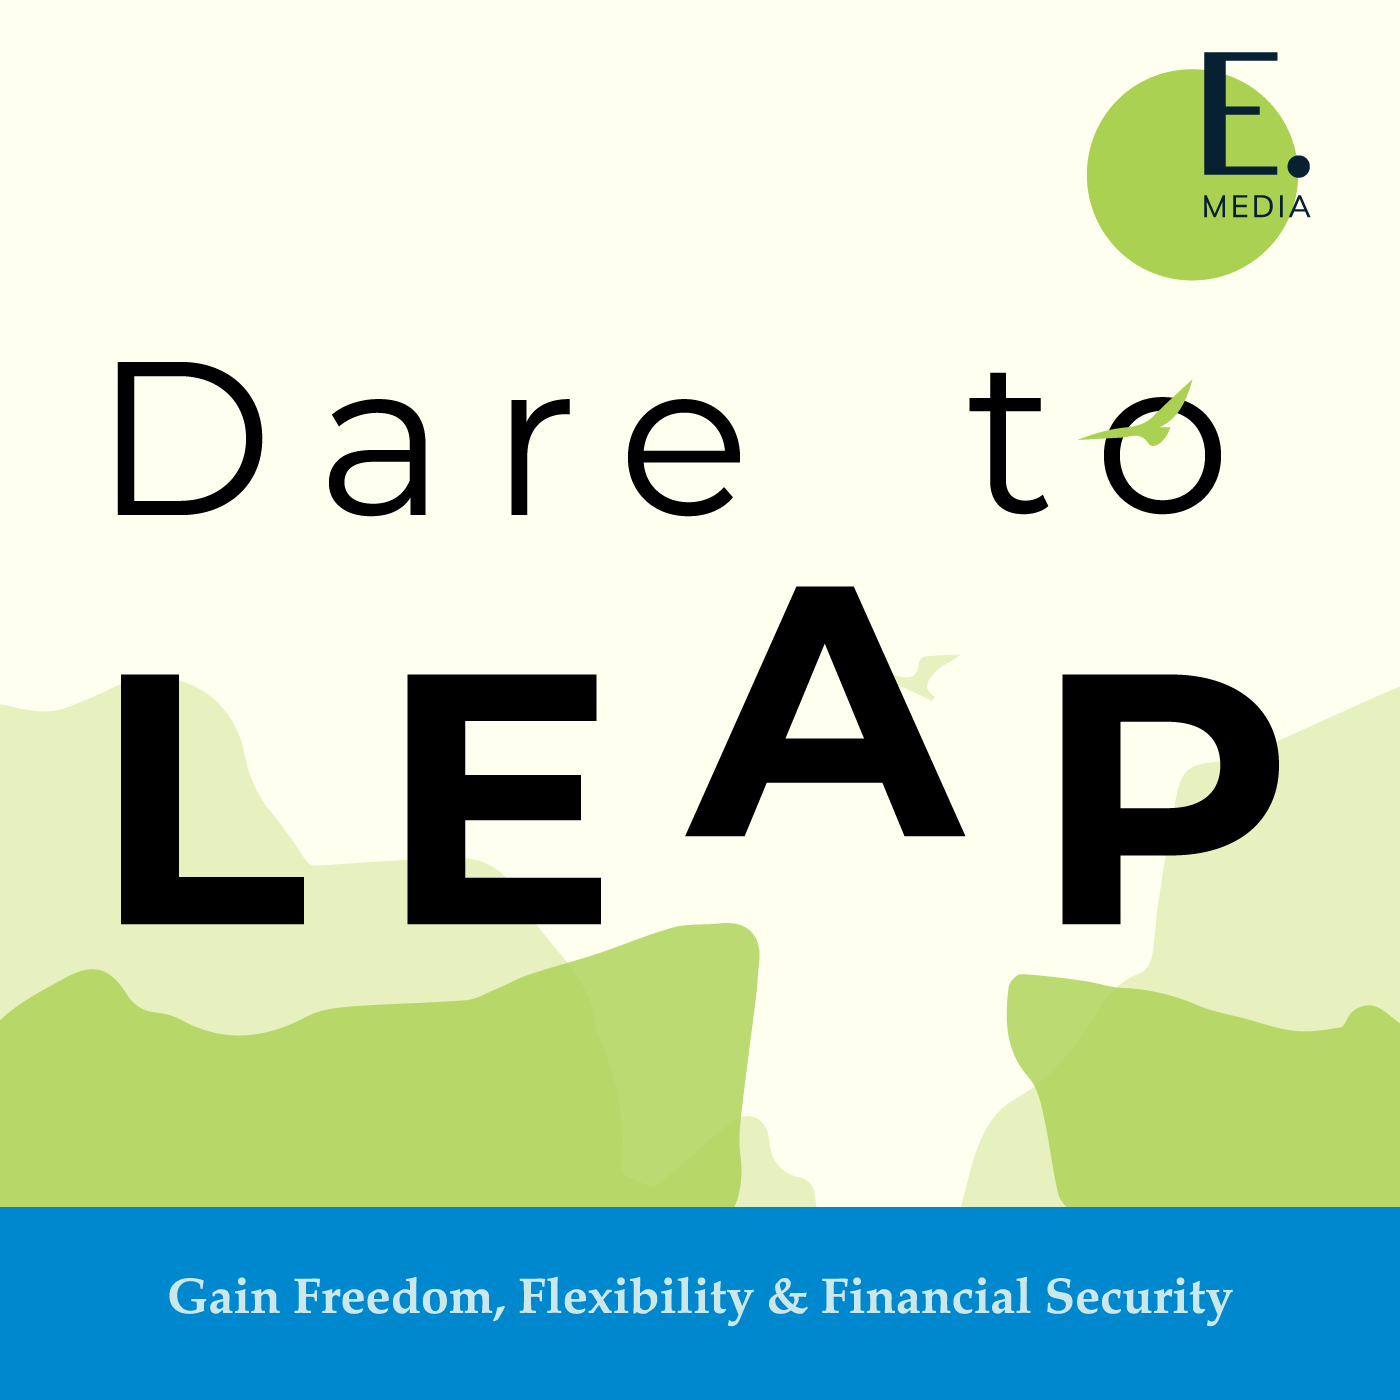 https://evolutionizemedia.com/wp-content/uploads/2020/08/DareToLeap-PodcastCover-01.png